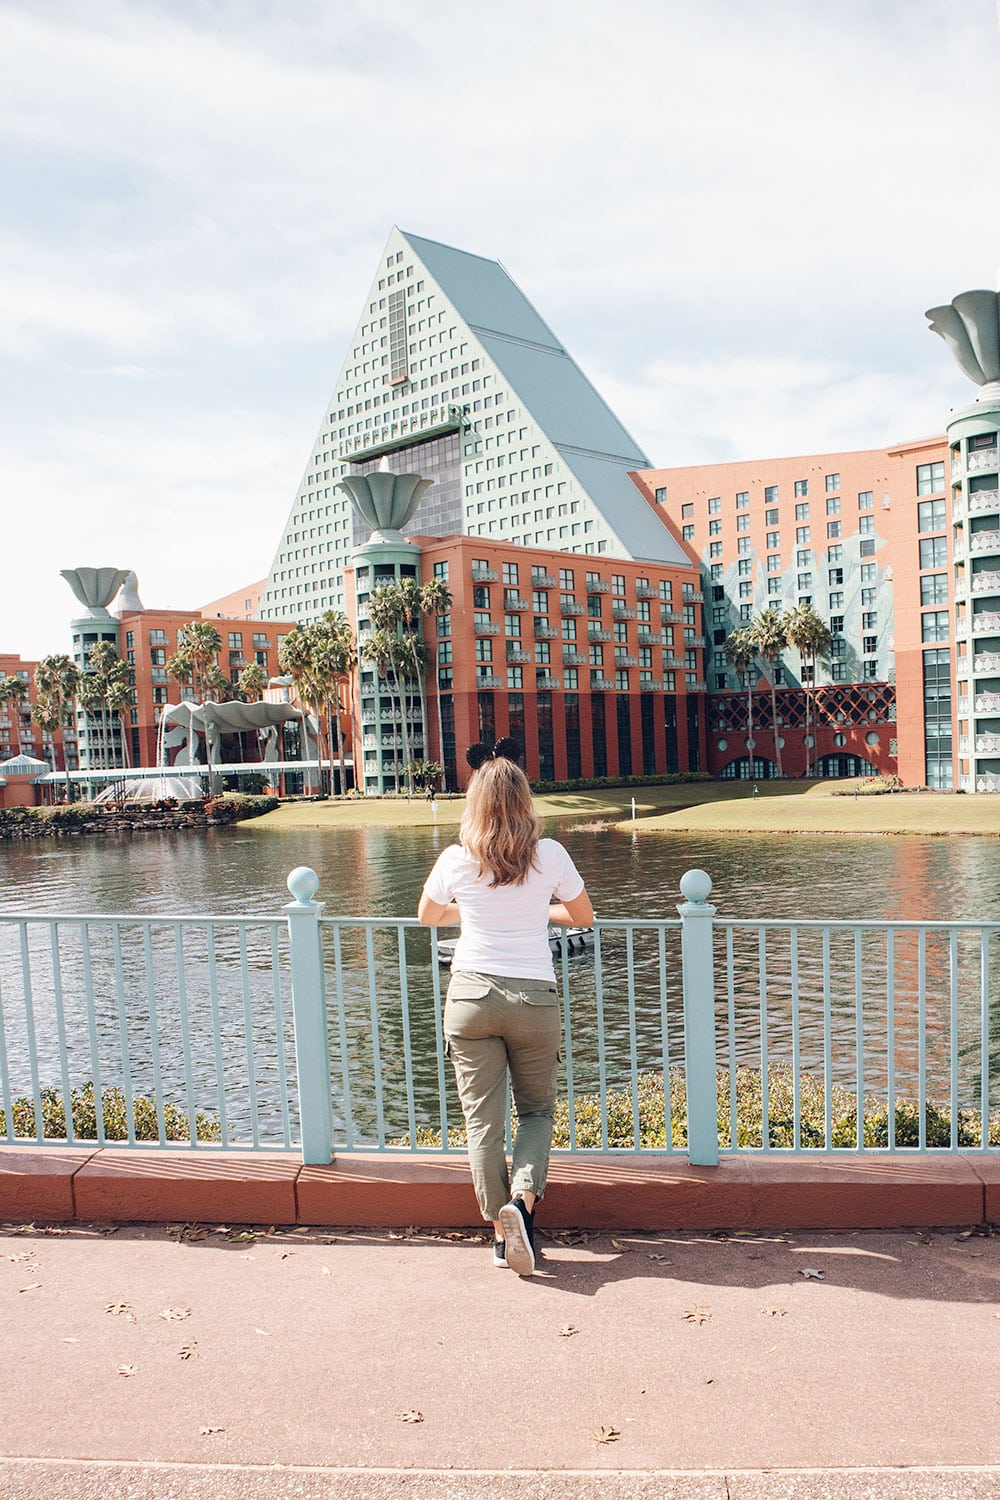 Houston family travel blogger Meg O. shares her experience staying at the Swan and Dolphin Resort in Orlando - benefits of staying at swan and dolphin